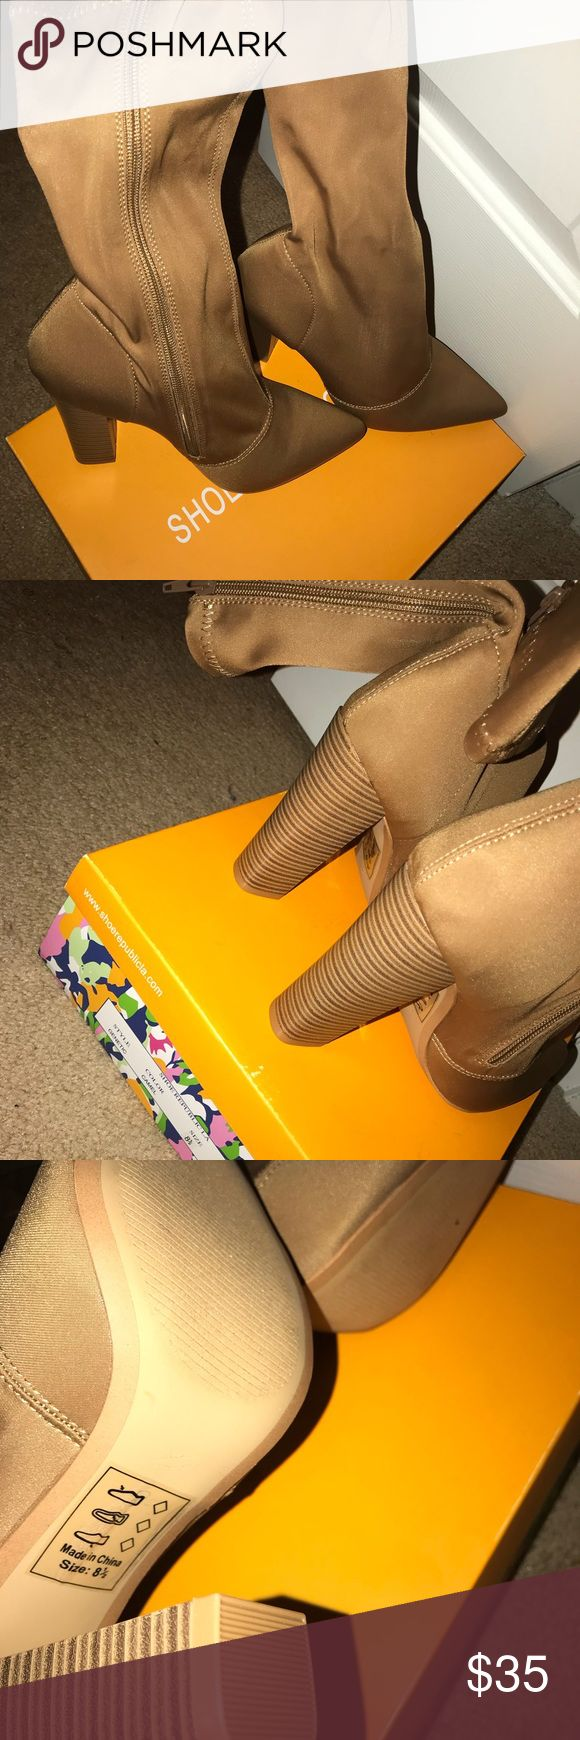 Tan Nude lycra zip up bootie Great shoe for all seasons. New in original box, never worn. Sz 8.5 Shoe Republic LA Shoes Ankle Boots & Booties